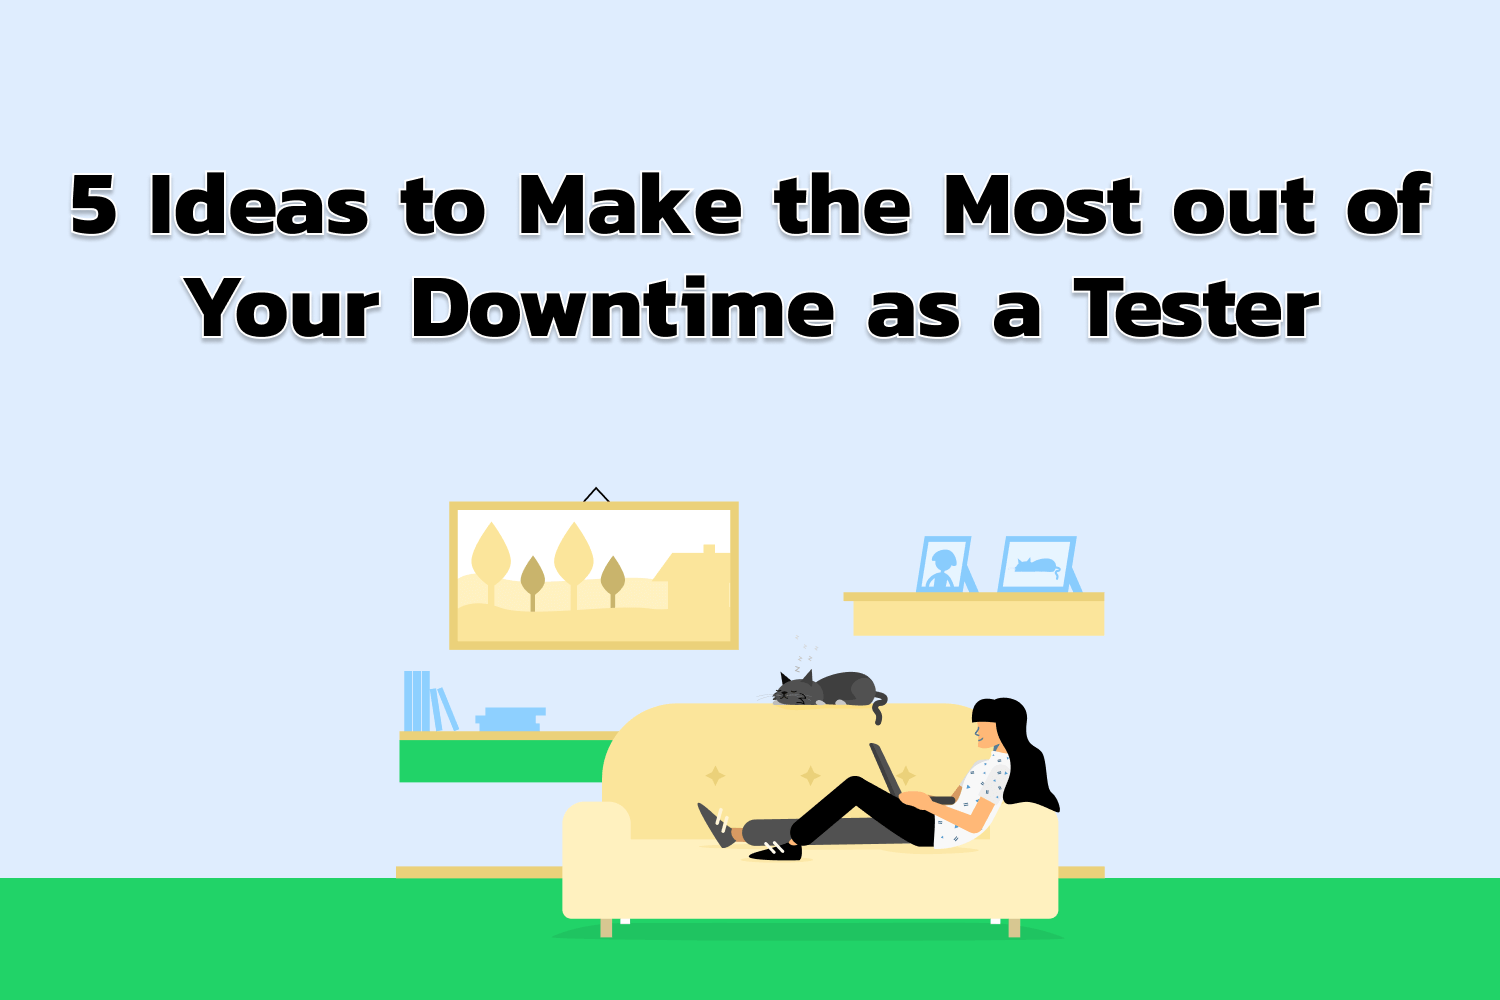 5 Ideas to Make the Most out of Your Downtime as a Tester